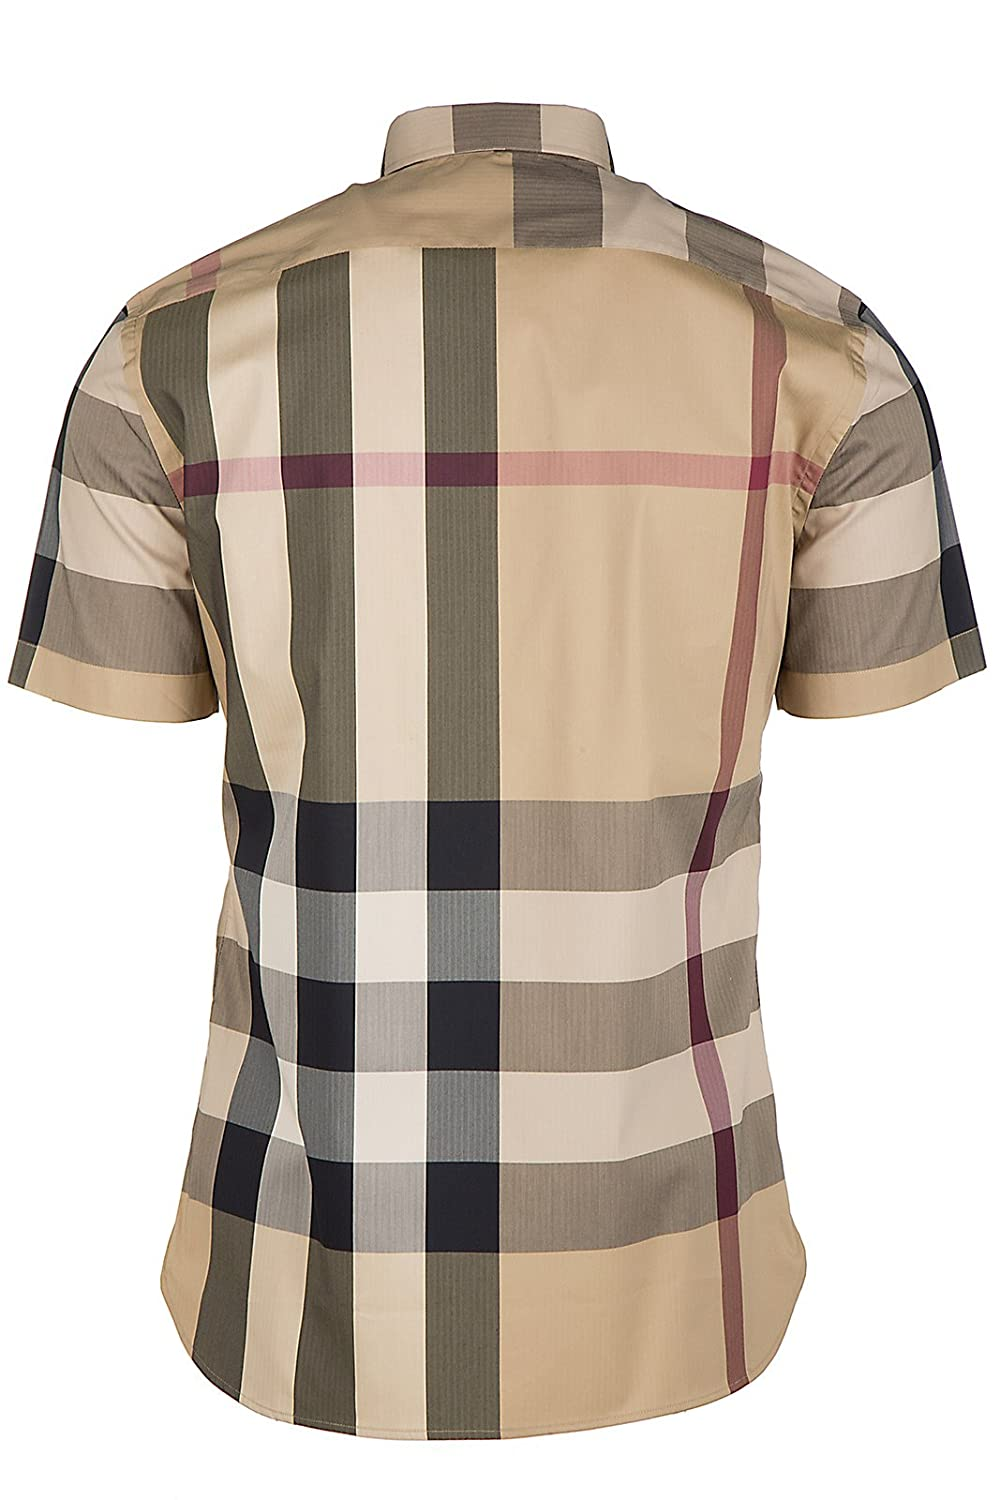 BURBERRY Men s Short Sleeve Shirt t-Shirt thornaby Beige US Size S (US S)  4045837 at Amazon Men s Clothing store  7f7462ad872